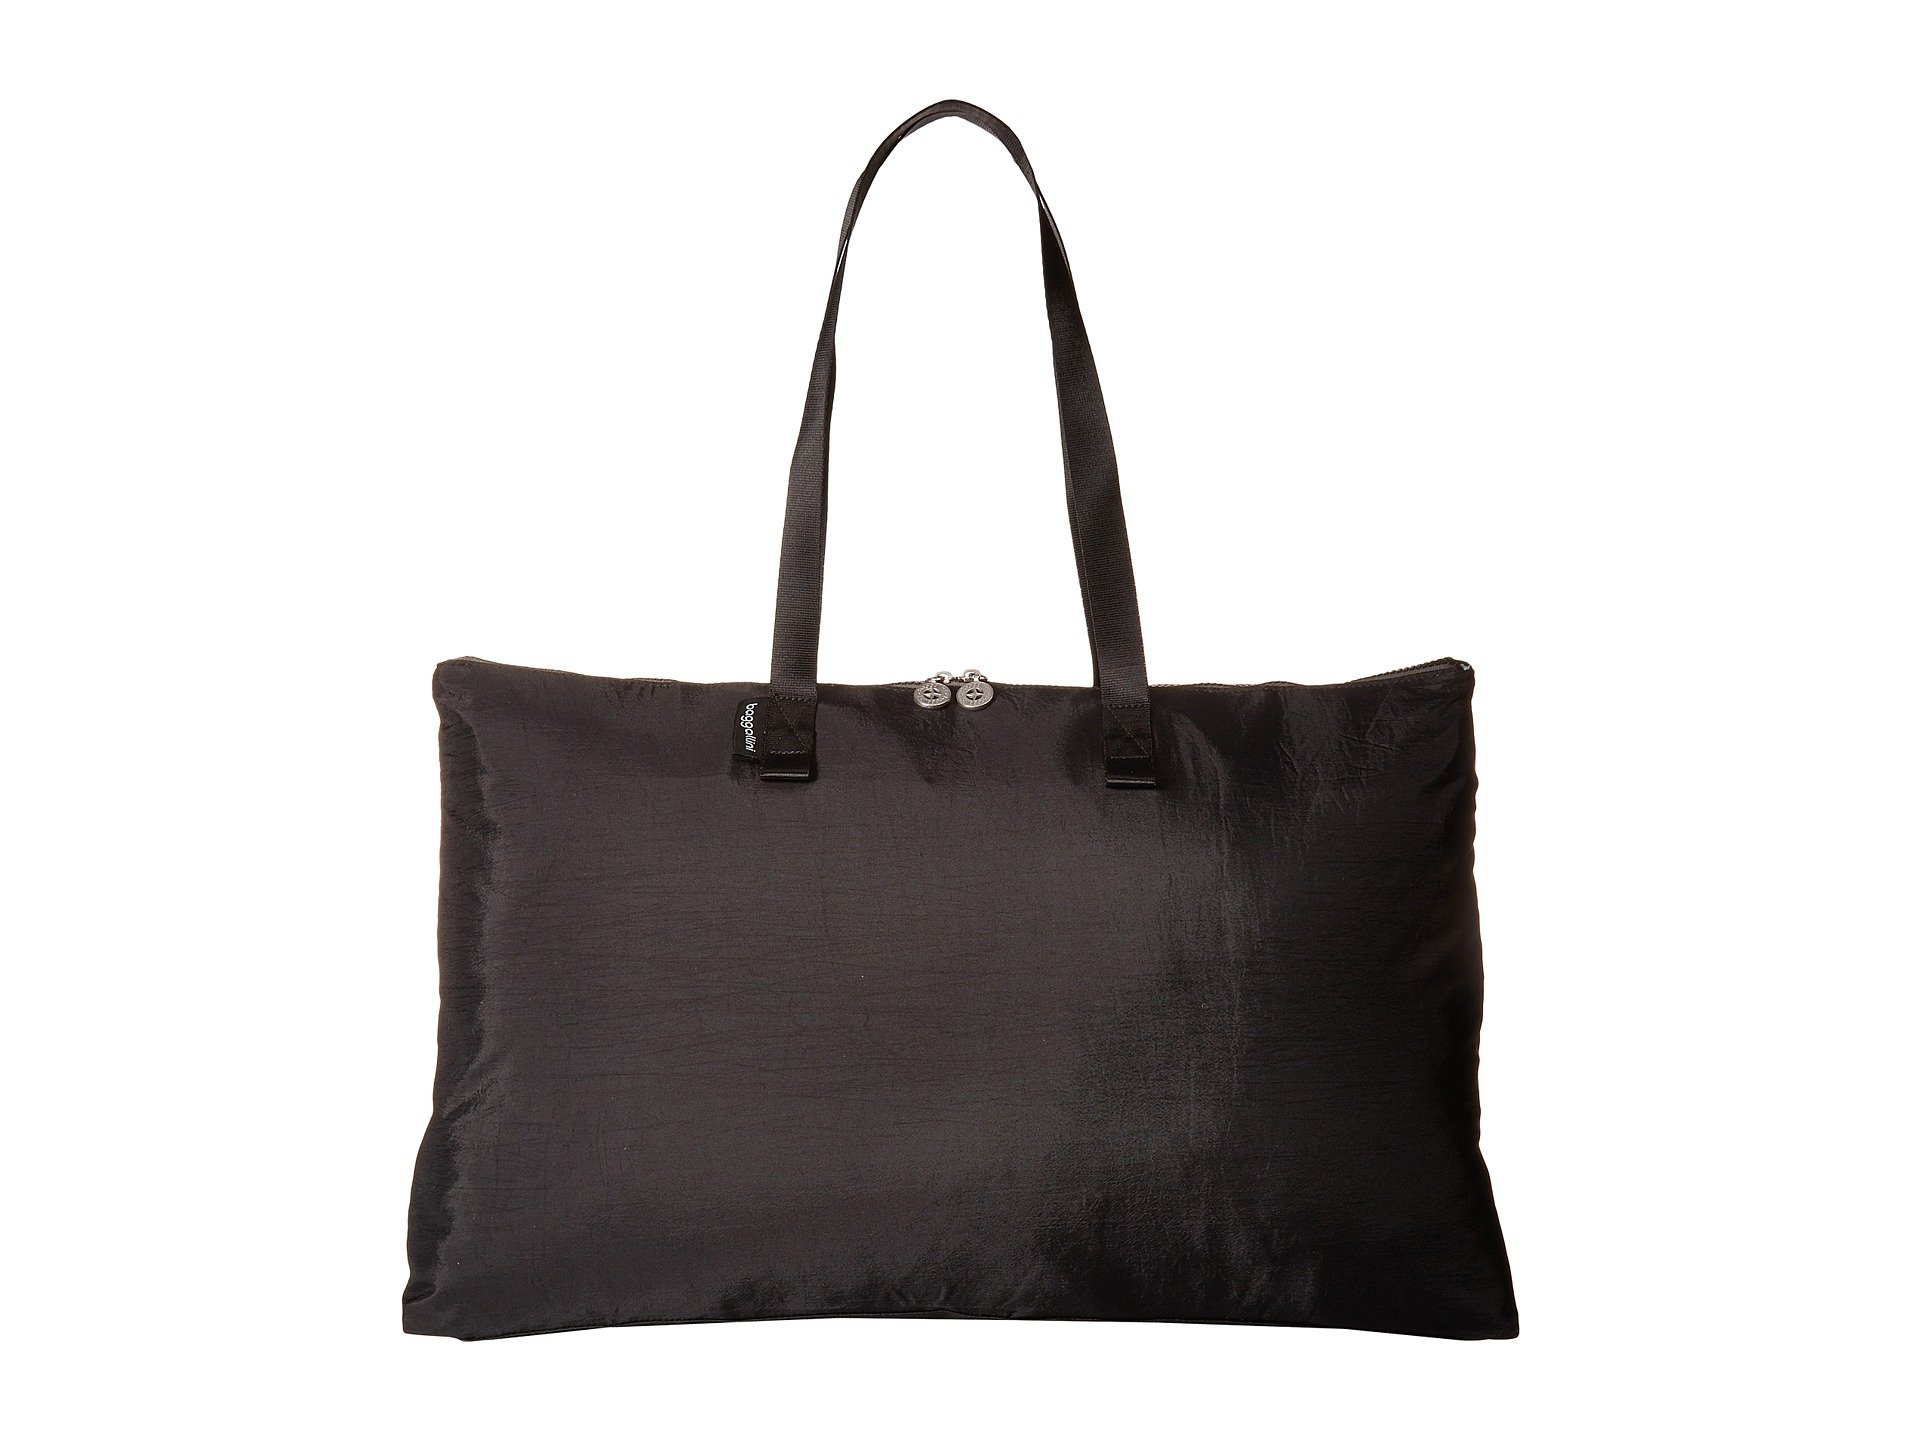 Foldable New Classic Tote charcoal Travel Baggallini Black zZxw0